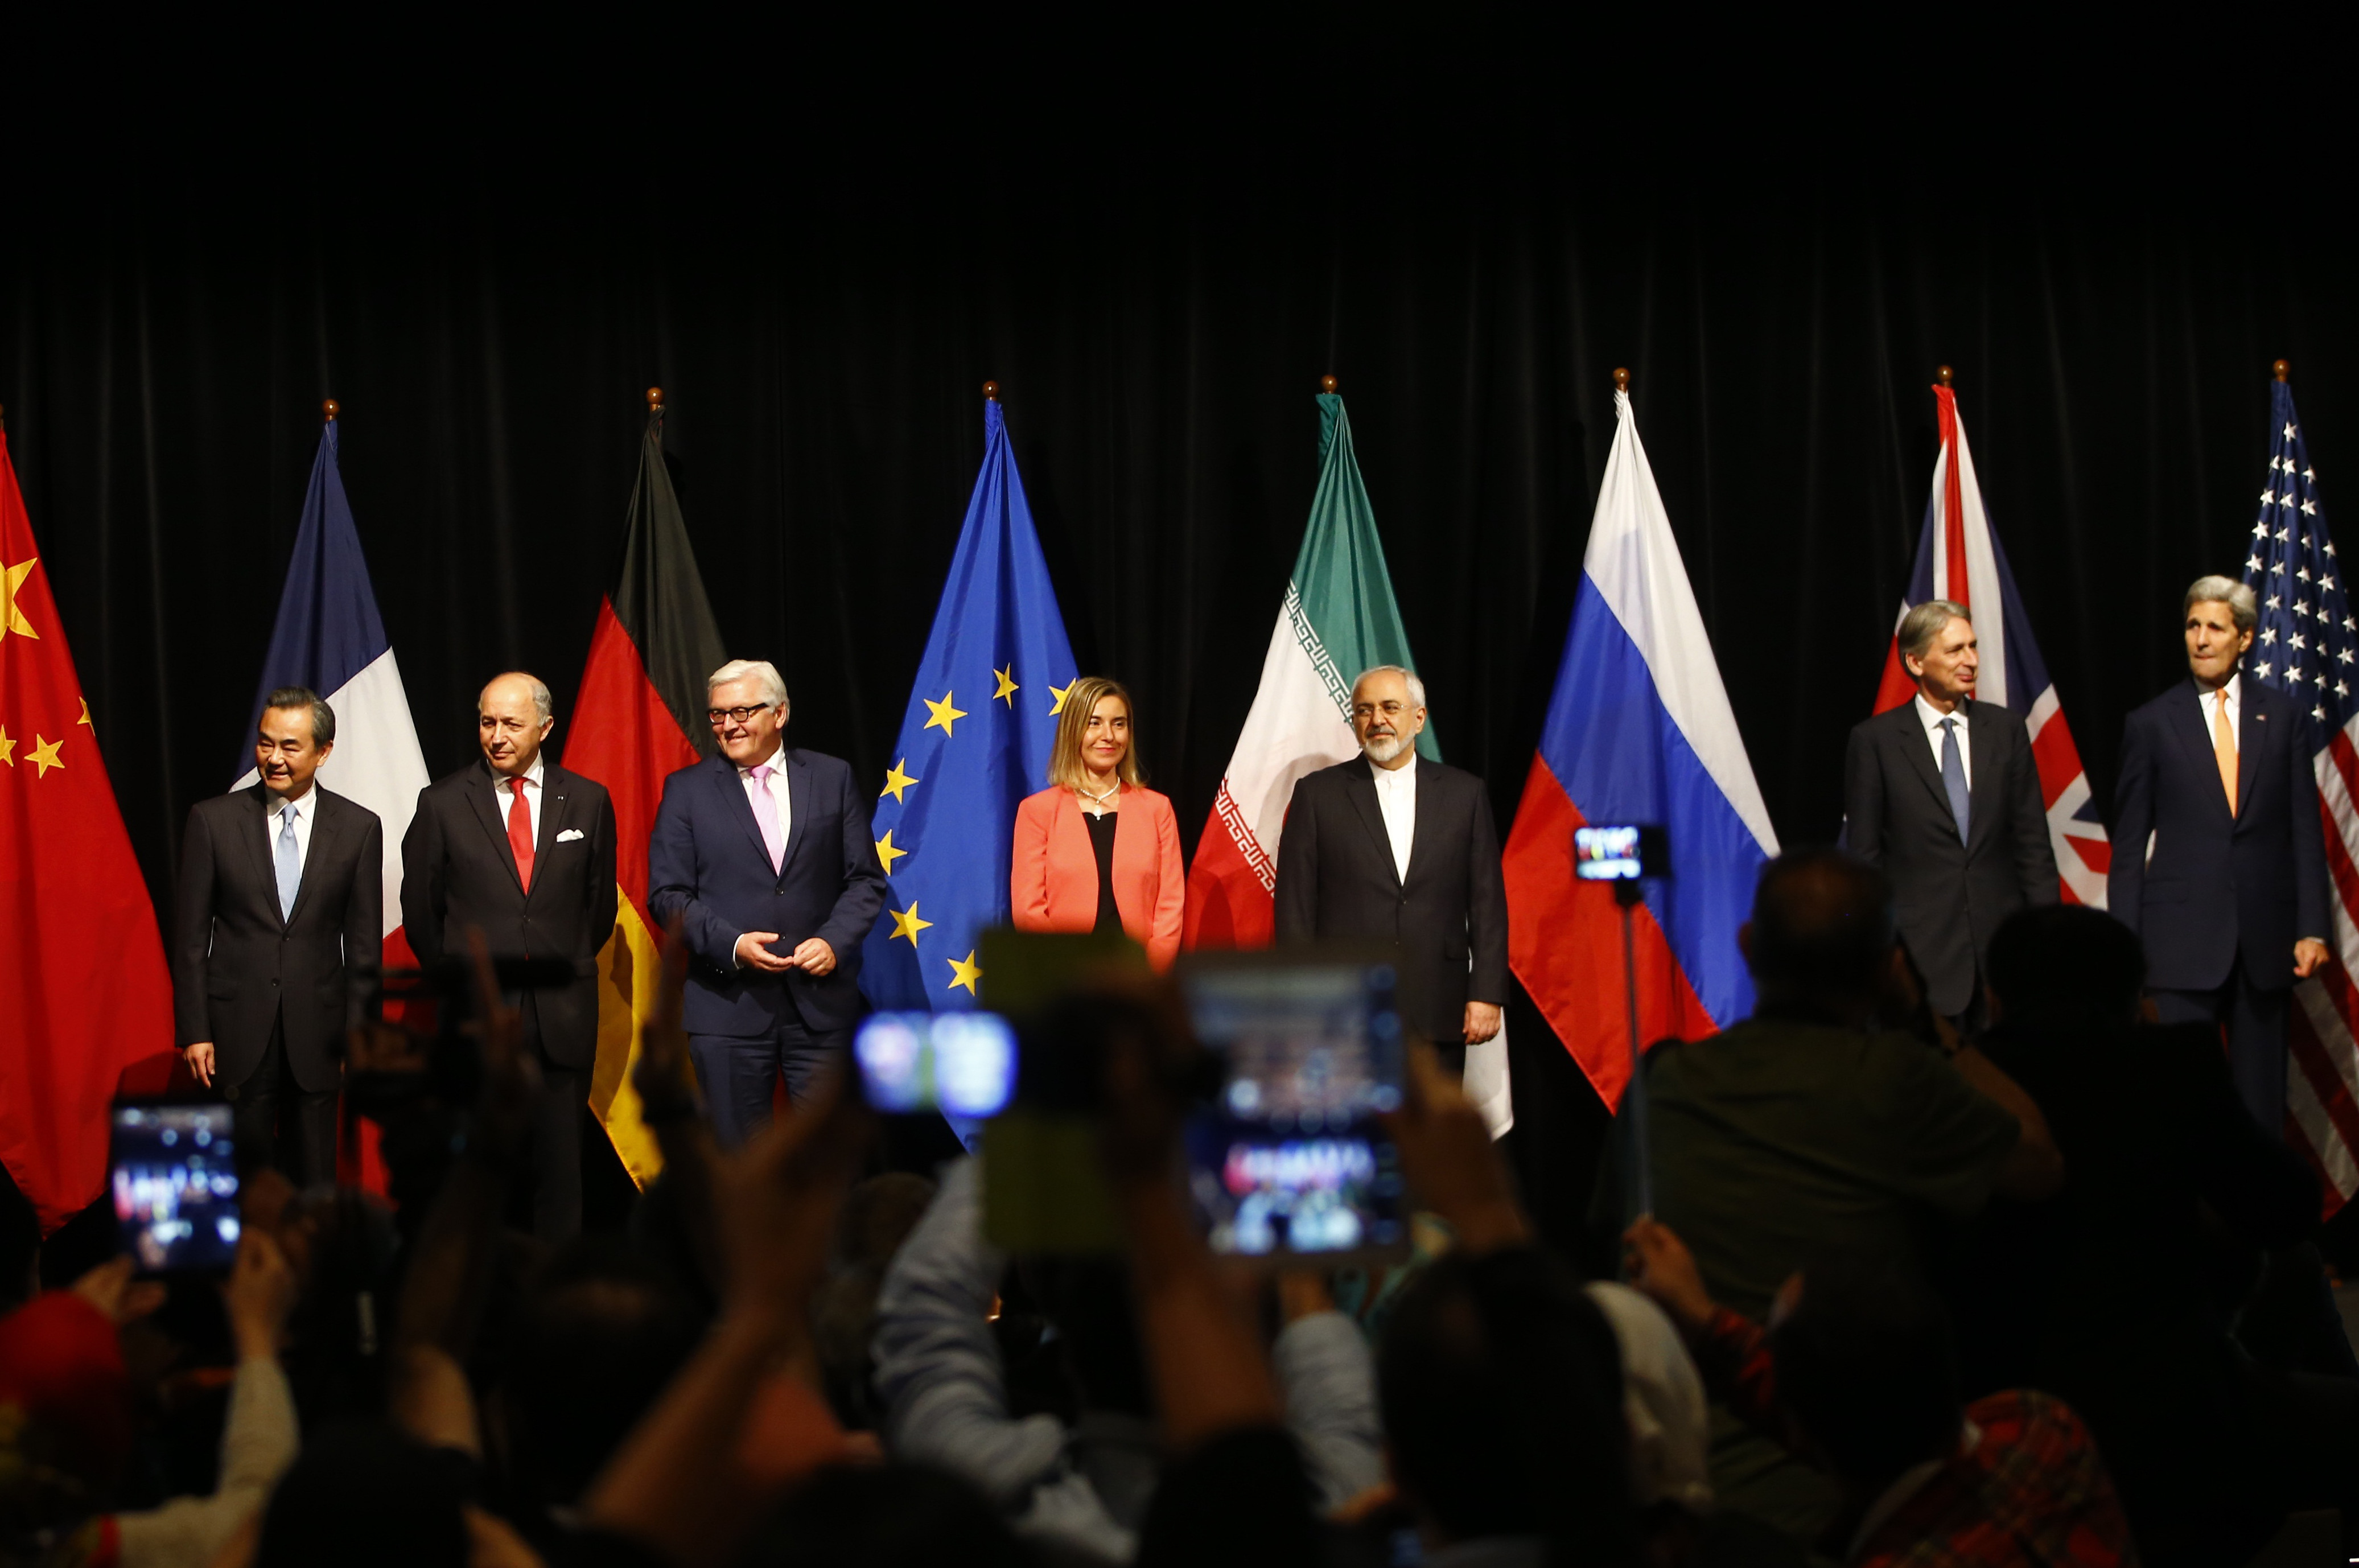 Representatives pose after Iran and six major world powers reached a nuclear deal, capping more than a decade of on-off negotiations, July 14, 2015 (Reuters)